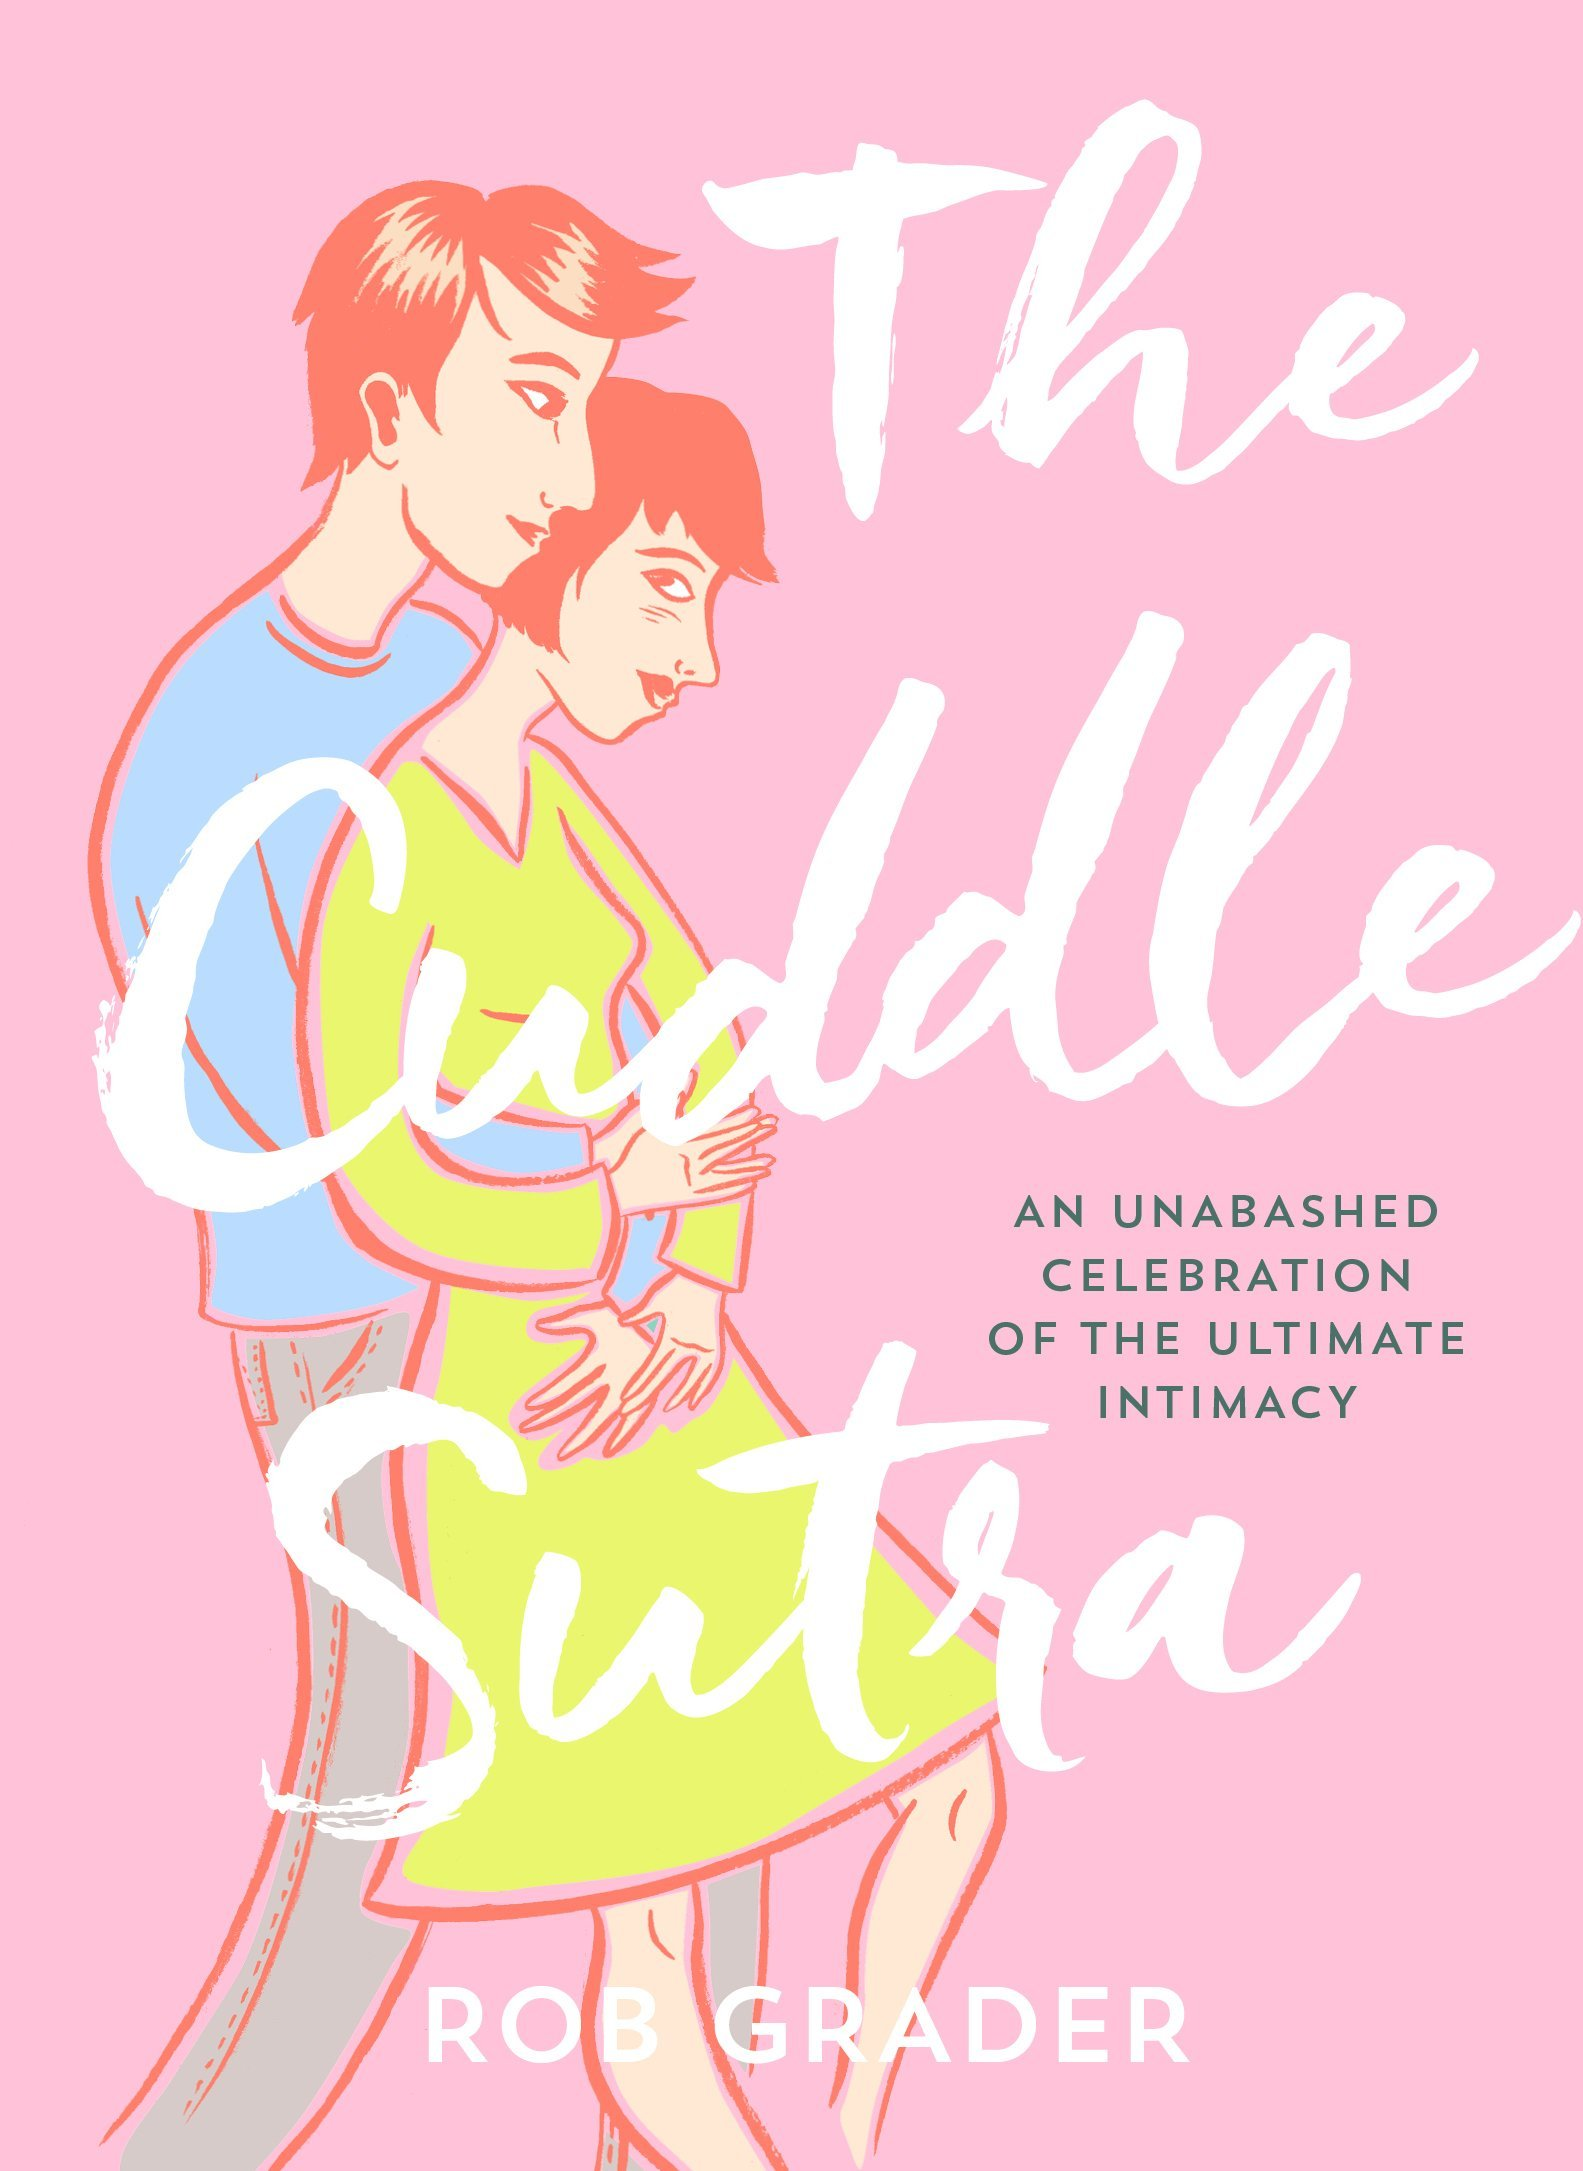 Download The Cuddle Sutra: An Unabashed Celebration of the